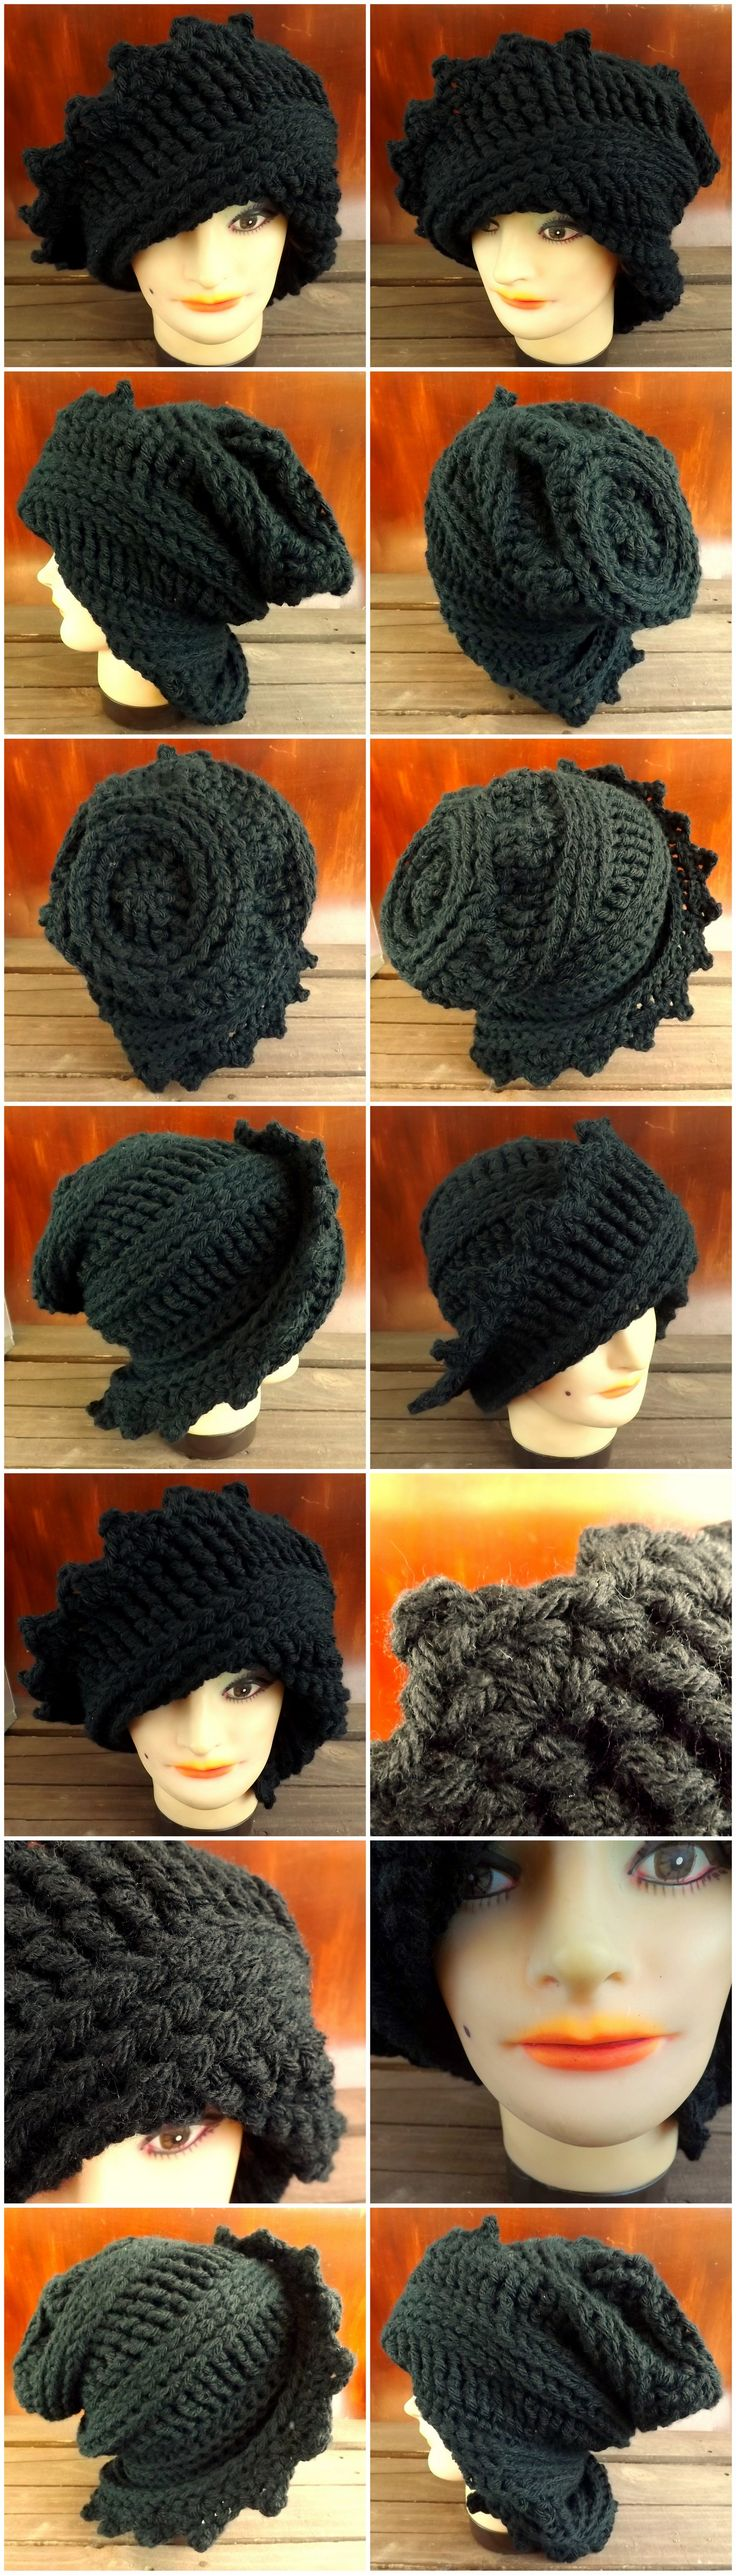 LAUREN Crochet Wool Beanie Hat in Black